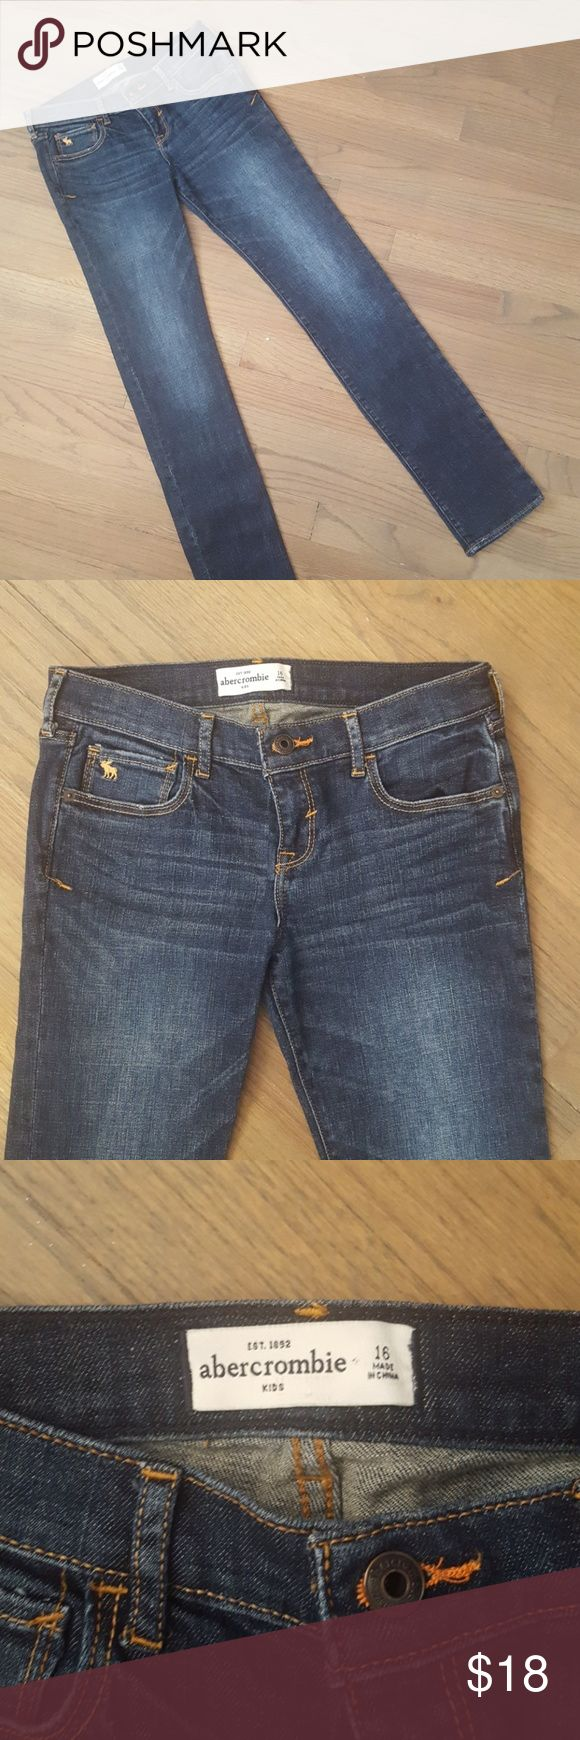 Abercrombie Girls Skinny Jeans Perfect Condition Perfect, like new condition. Stylish, subtle whiskering. Dark wash with slight fade. 99% cotton with a little stretch for comfort Abercombie Kids Bottoms Jeans